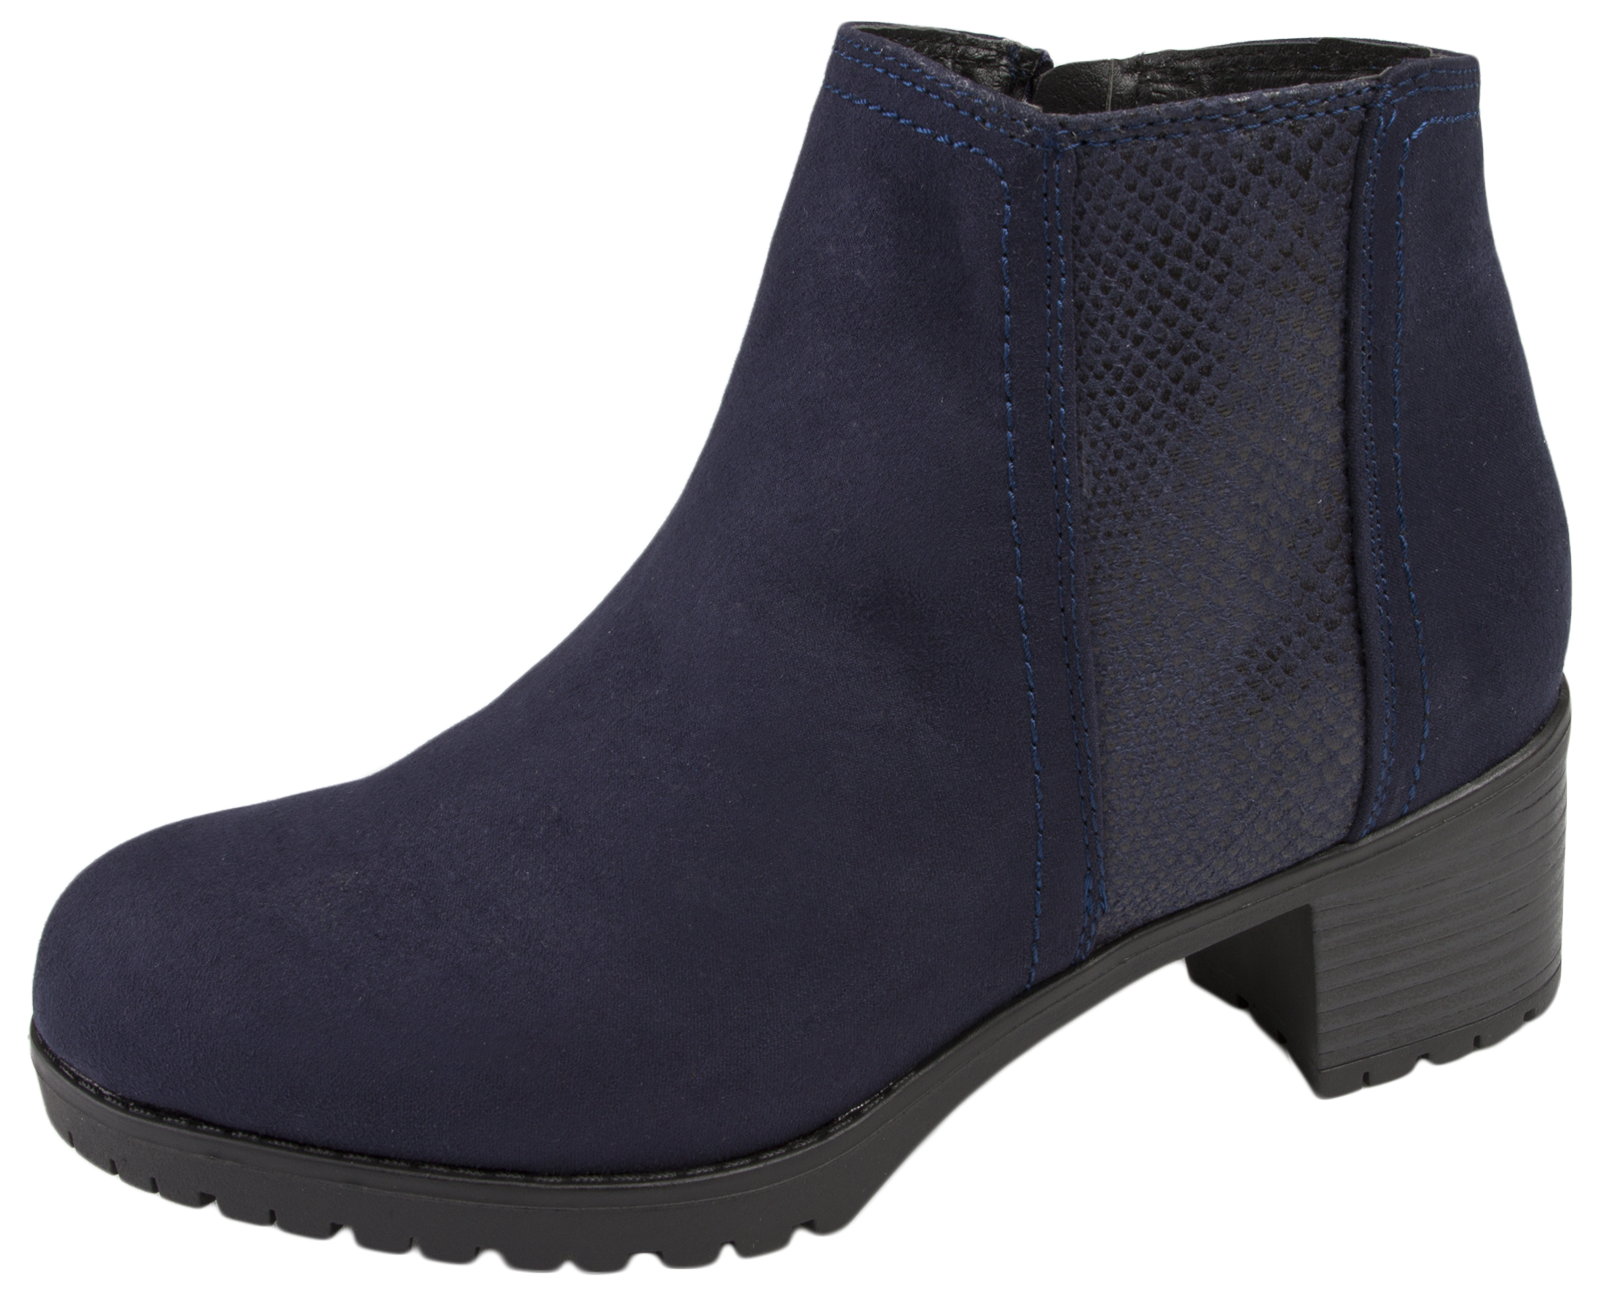 A velour-suede Chelsea boot is toughened up with an oiled finish, chunky heel and lugged rubber sole. Sure to be denim's best friend. SEE ALL PICS BEFORE PUR.